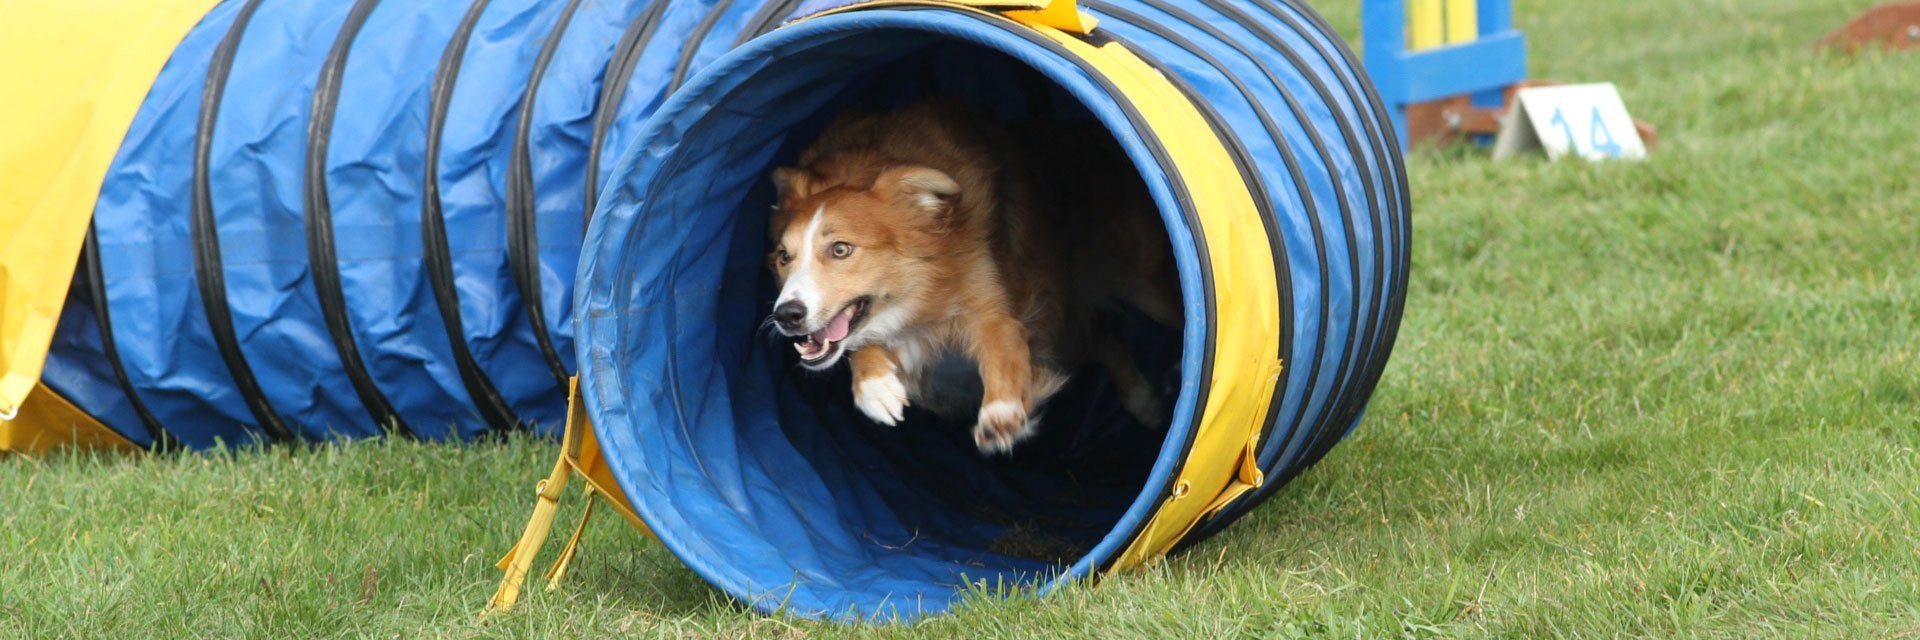 dog inside the tunnel